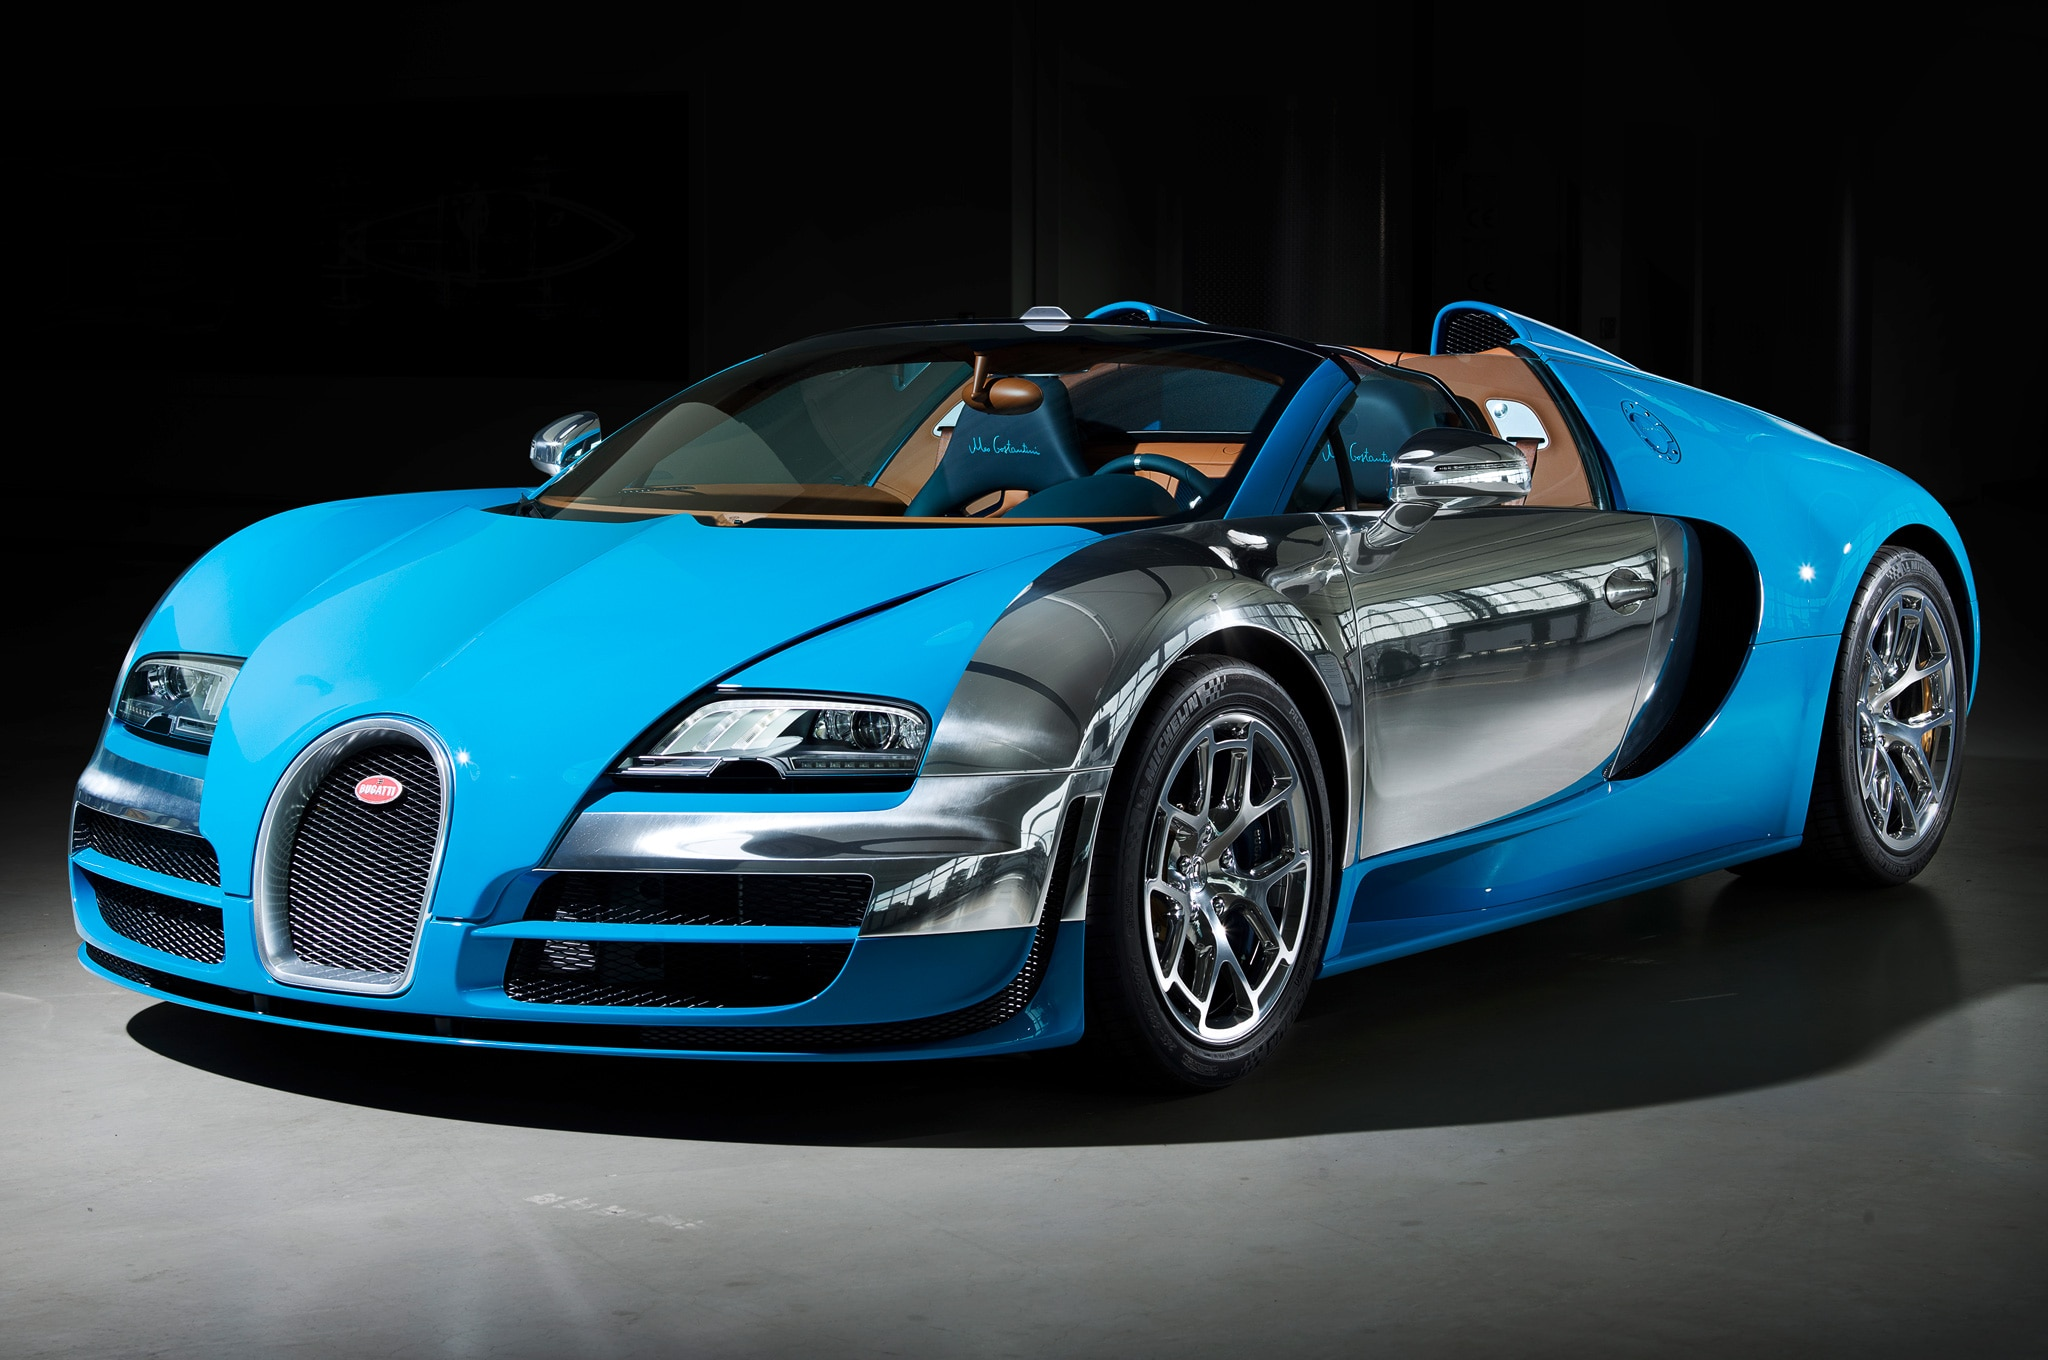 2013 Bugatti Veyron Grand Sport Vitesse Meo Costantini Edition Front Three Quarters View1